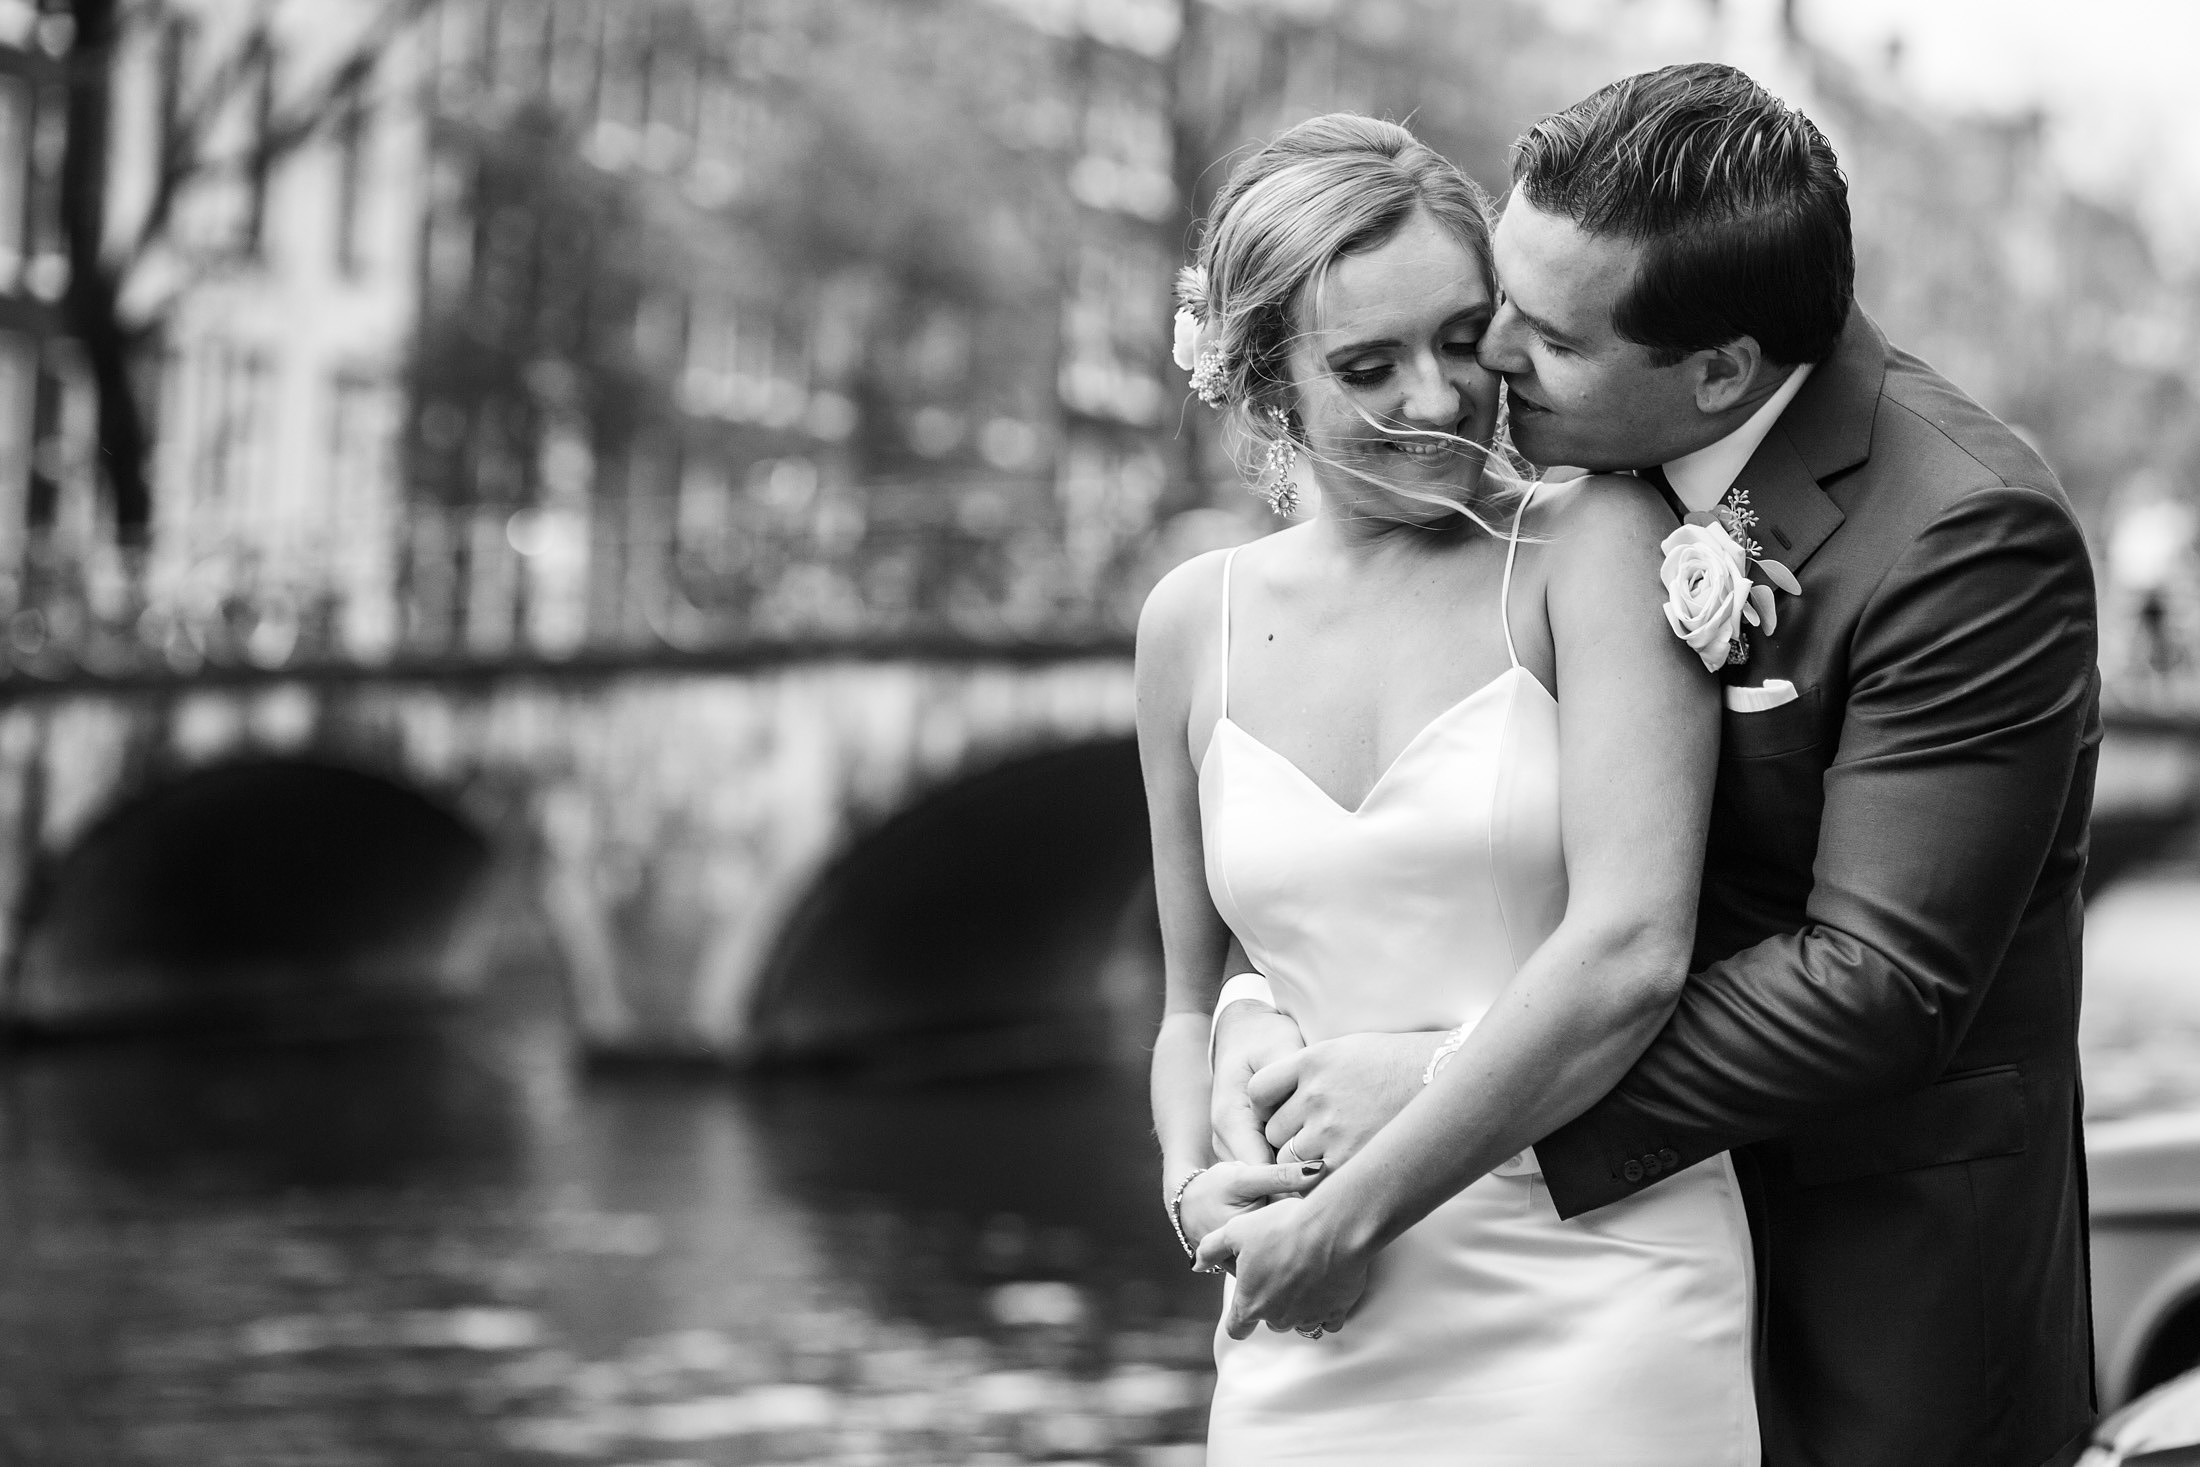 23-photoshoot-wedding-amsterdam